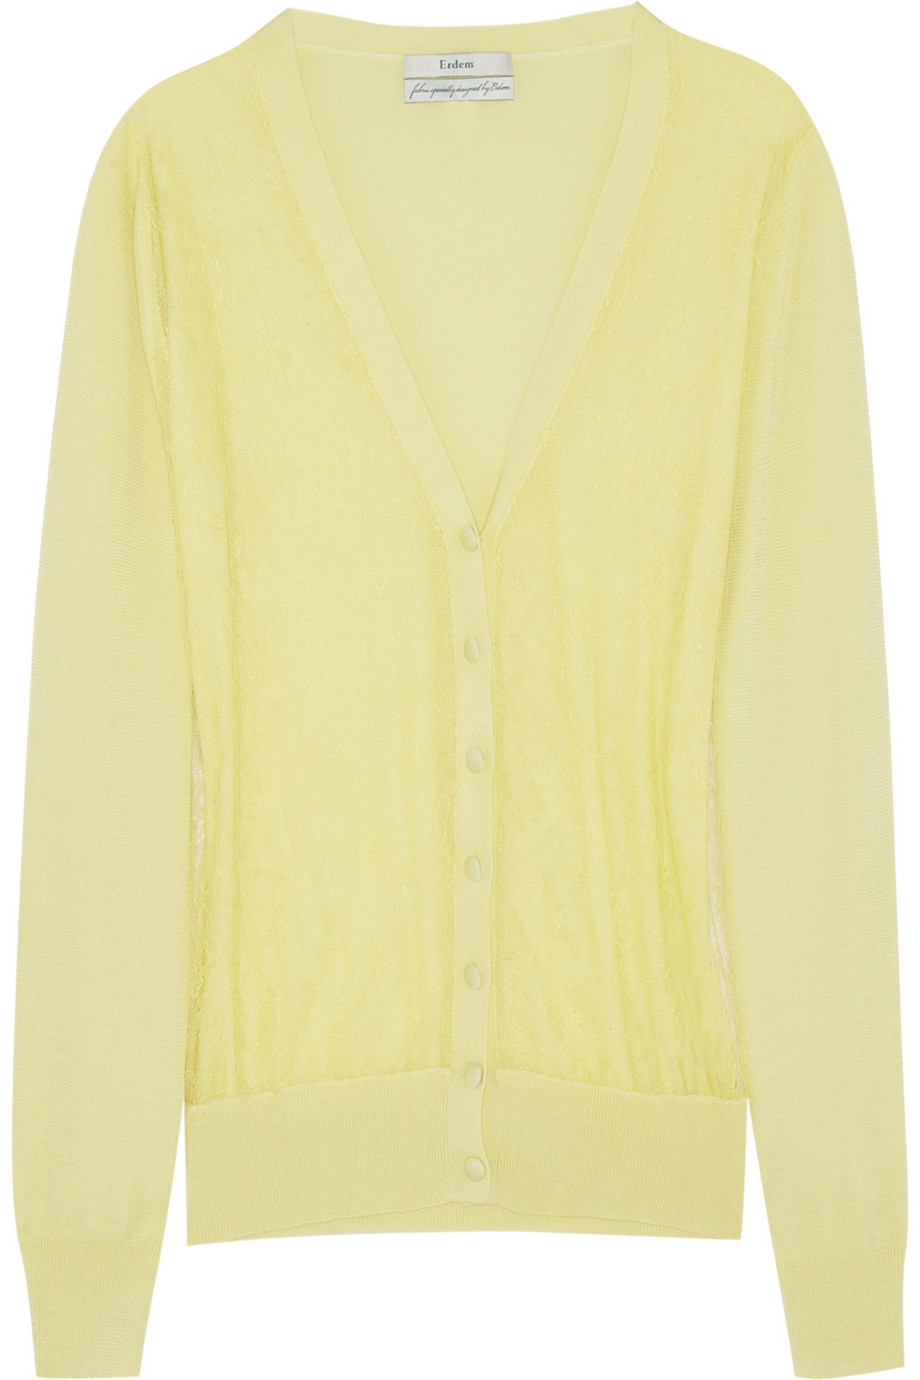 Erdem Emerson Silkblend and Lace Cardigan in Yellow   Lyst